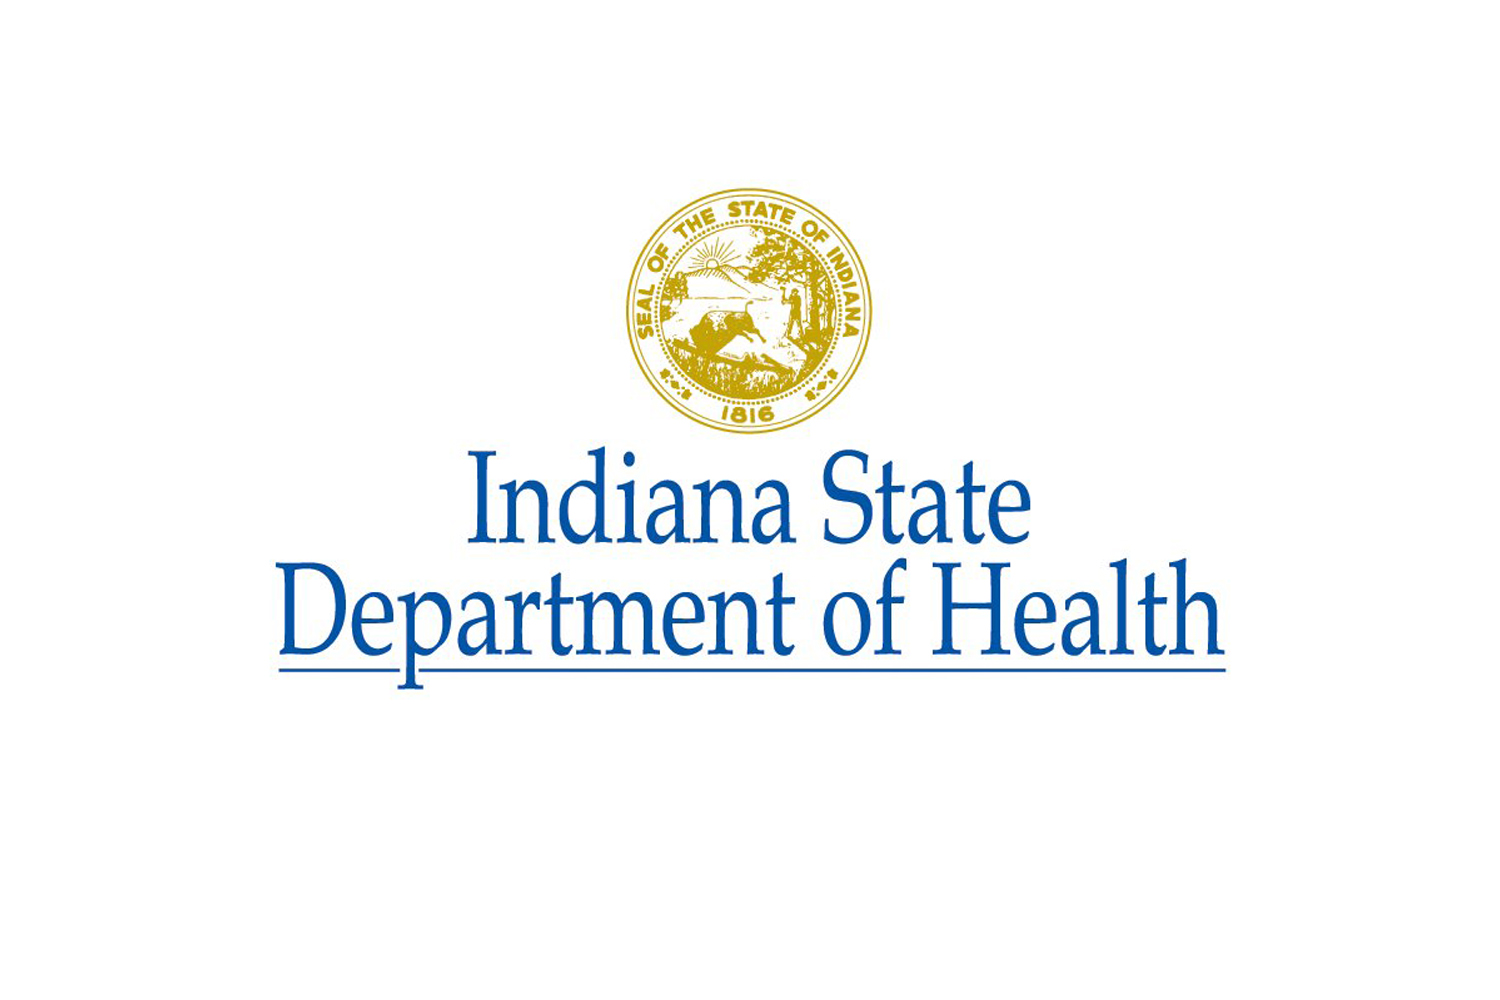 The logo of the Indiana State Department of Health.